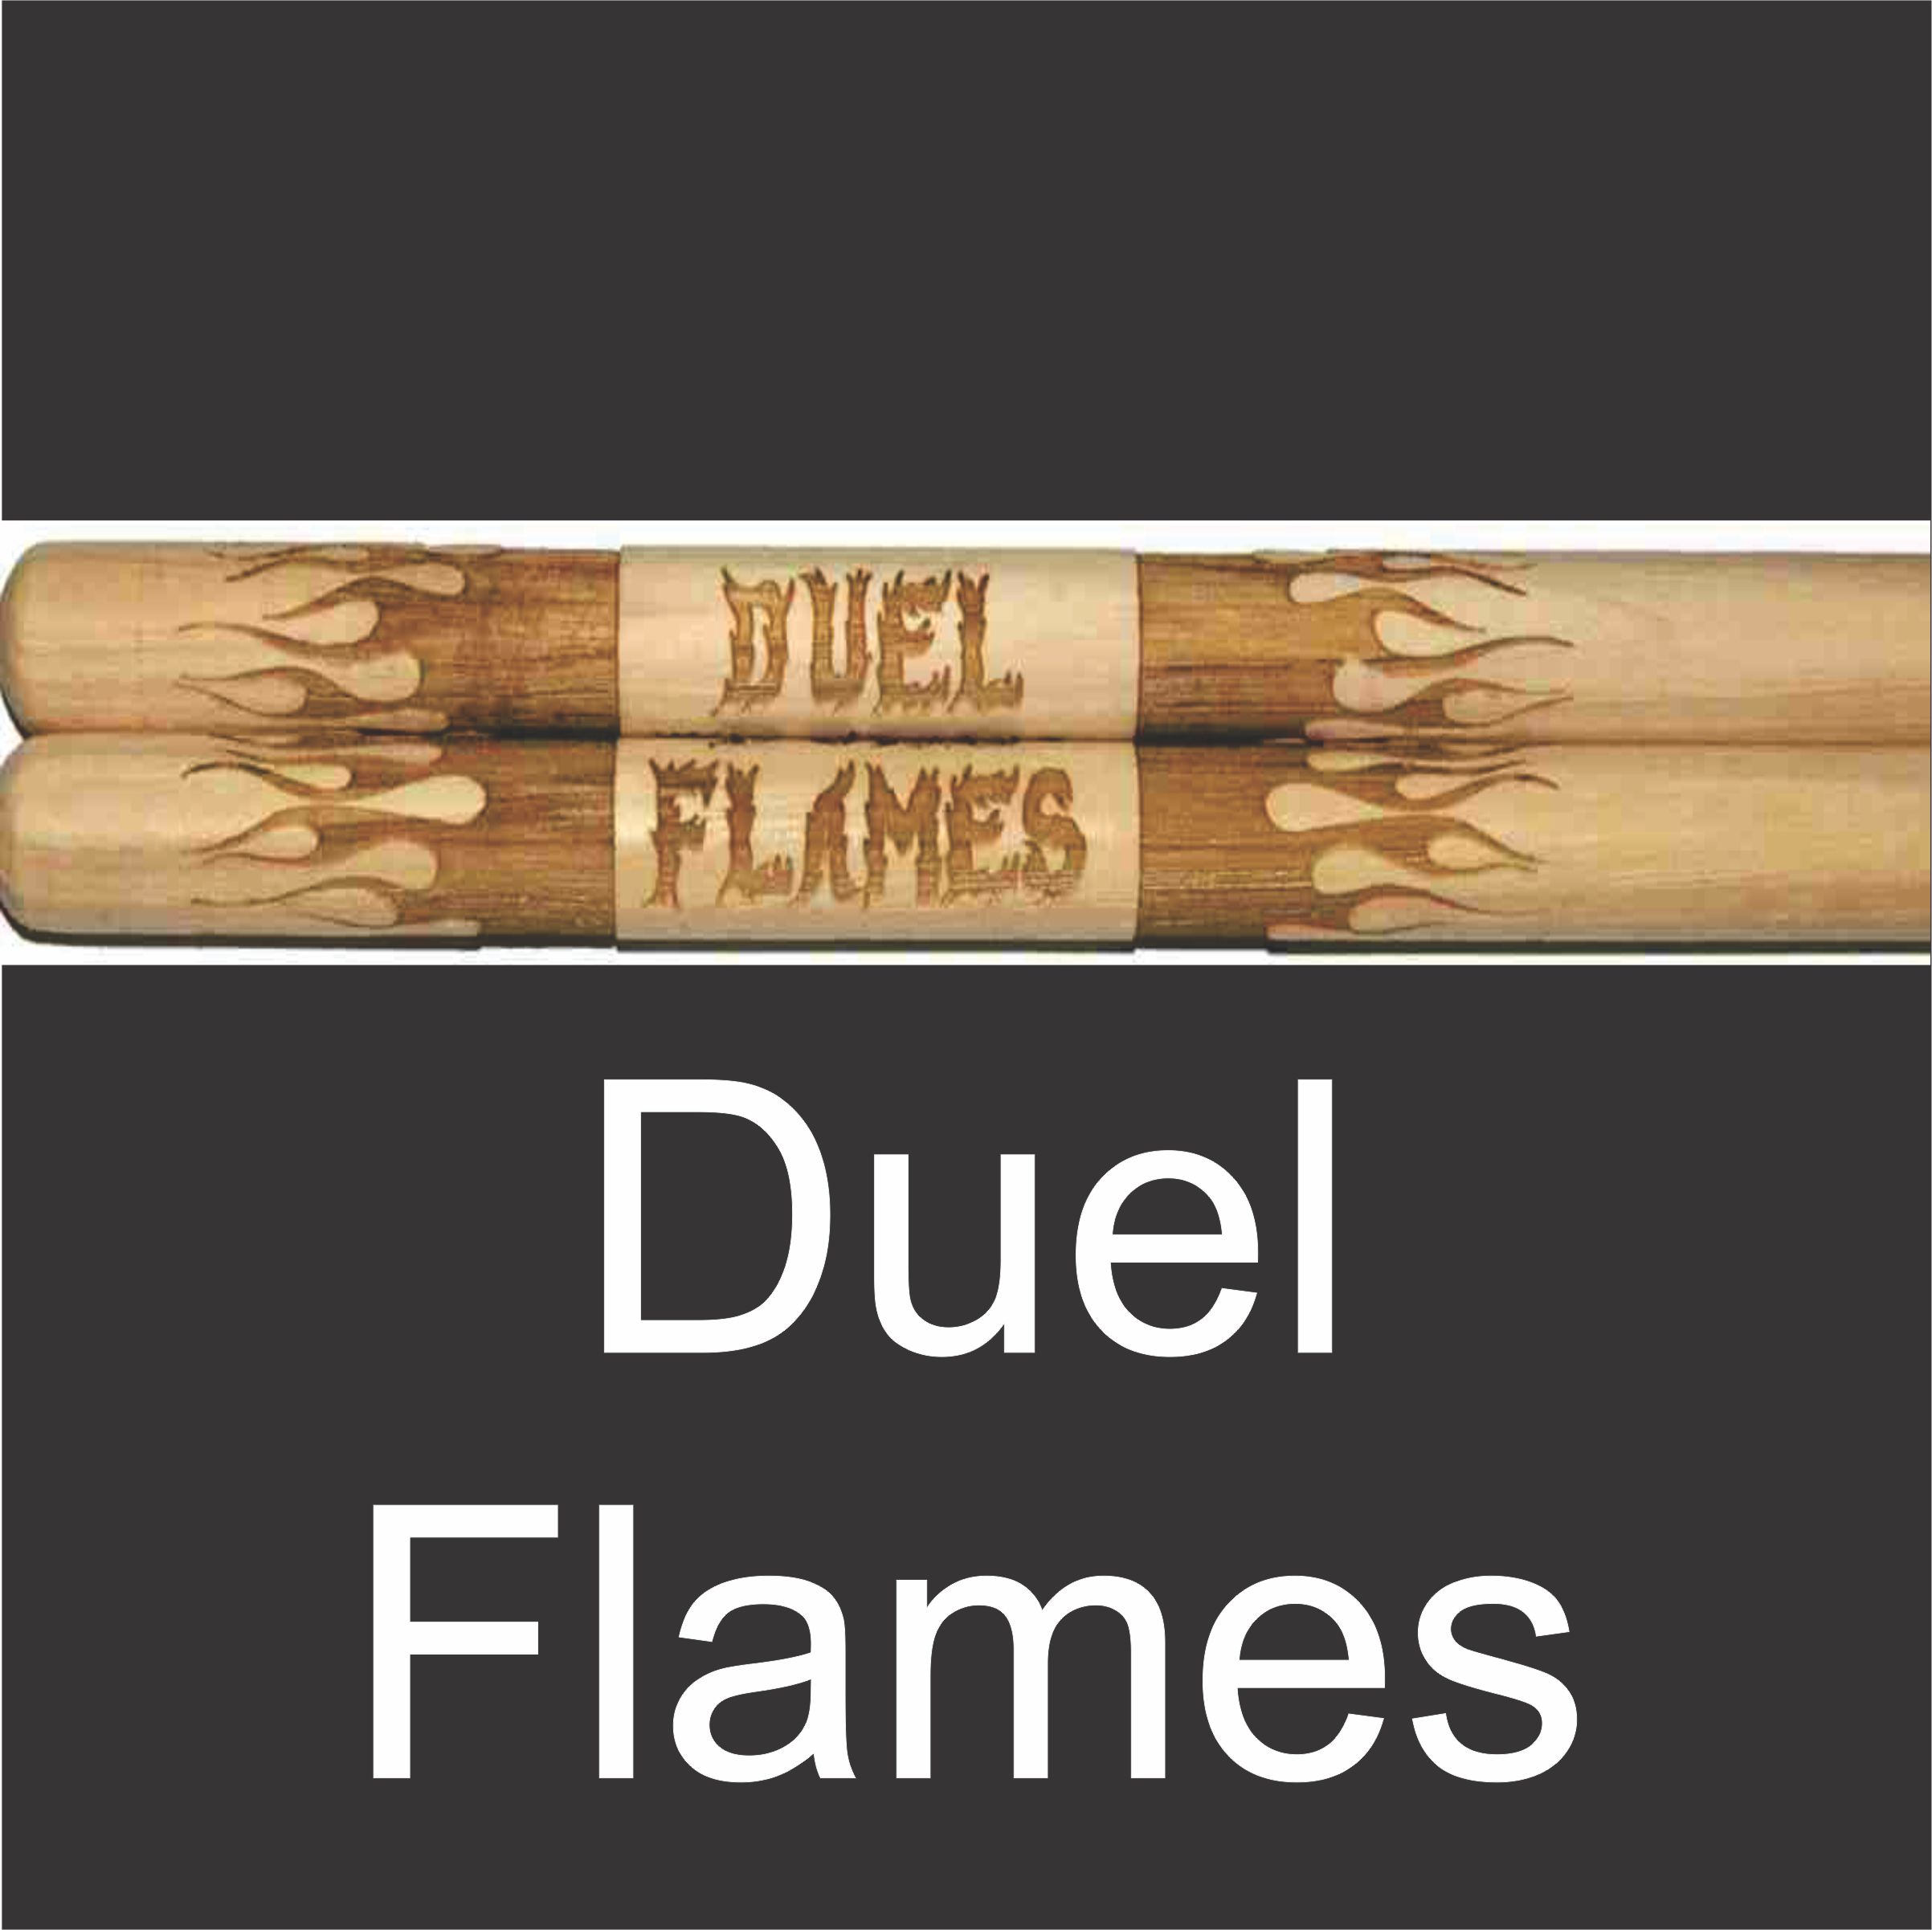 personalized drumstick set with wrapping flame design